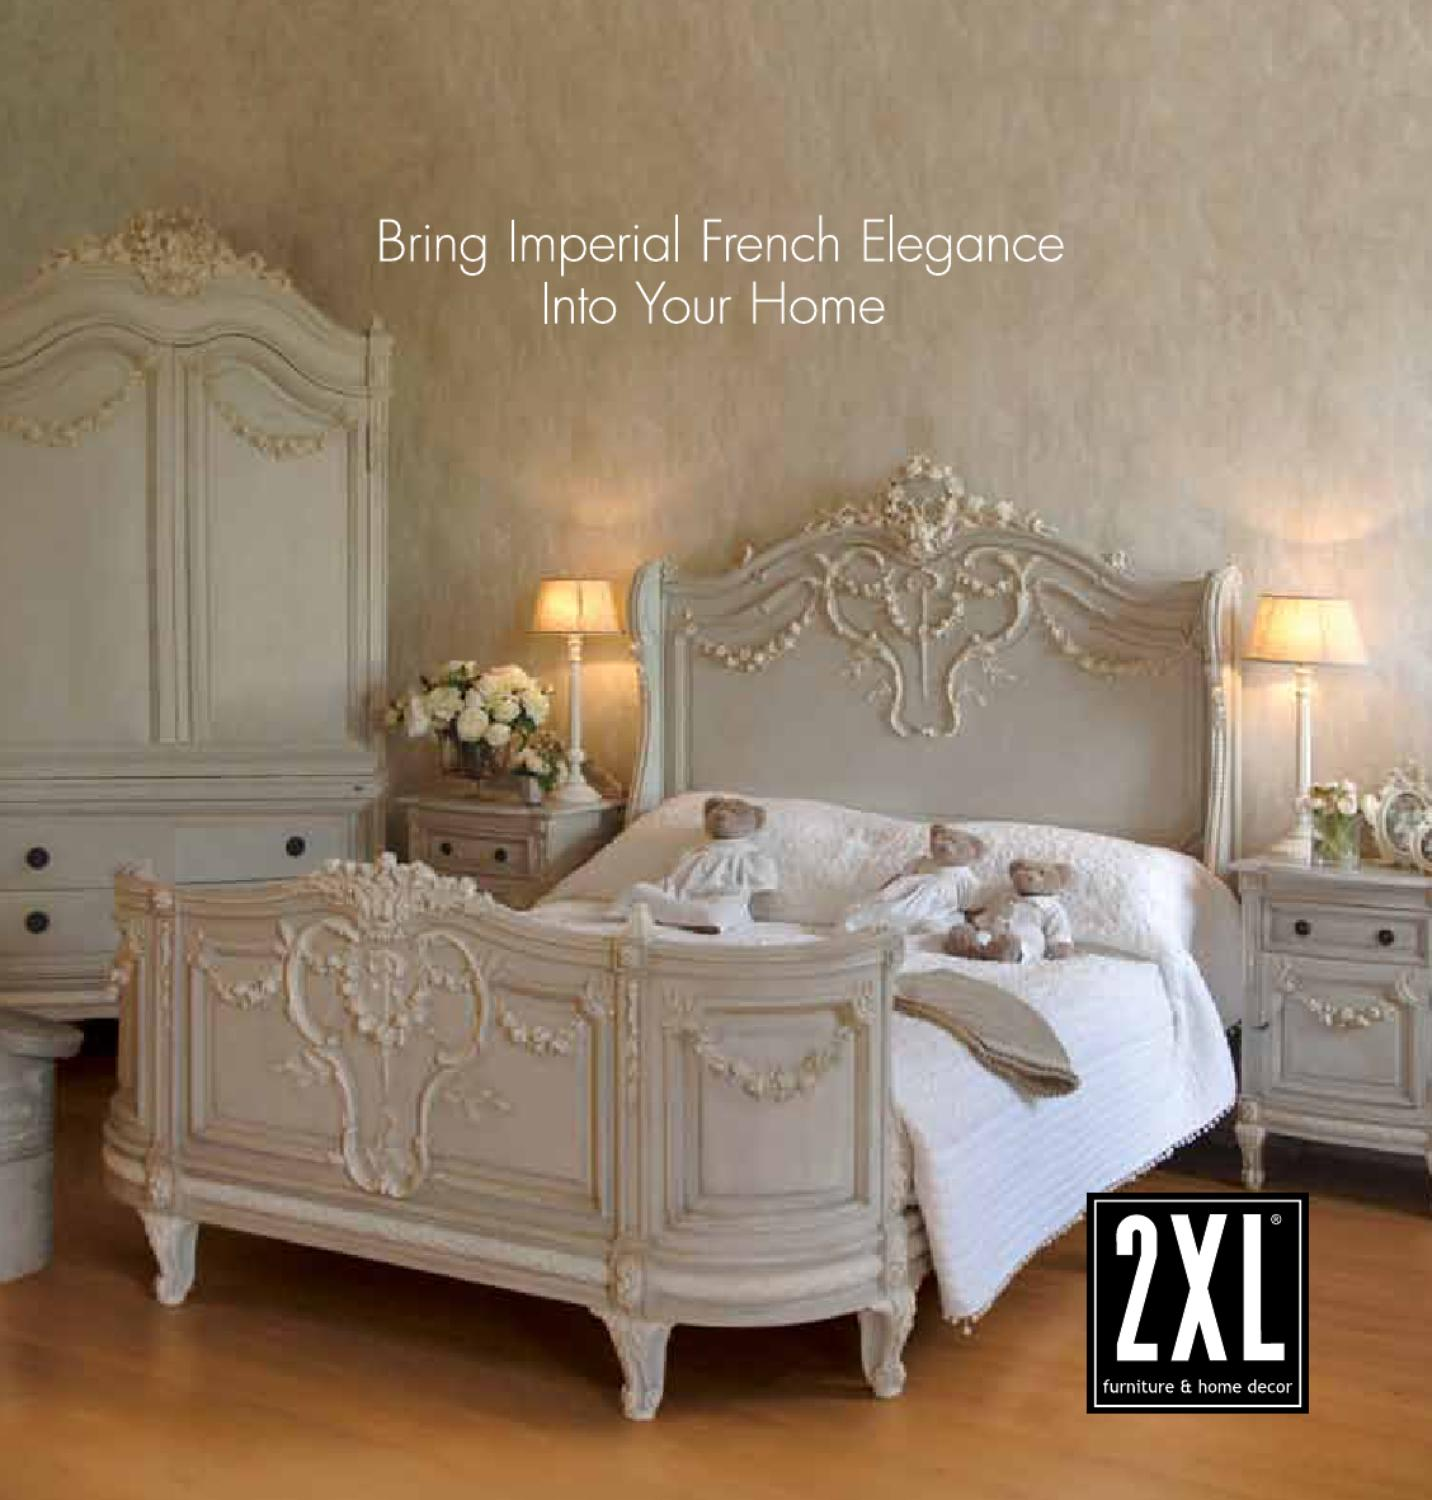 2xl furniture home decor by hot media issuu for Home by decor